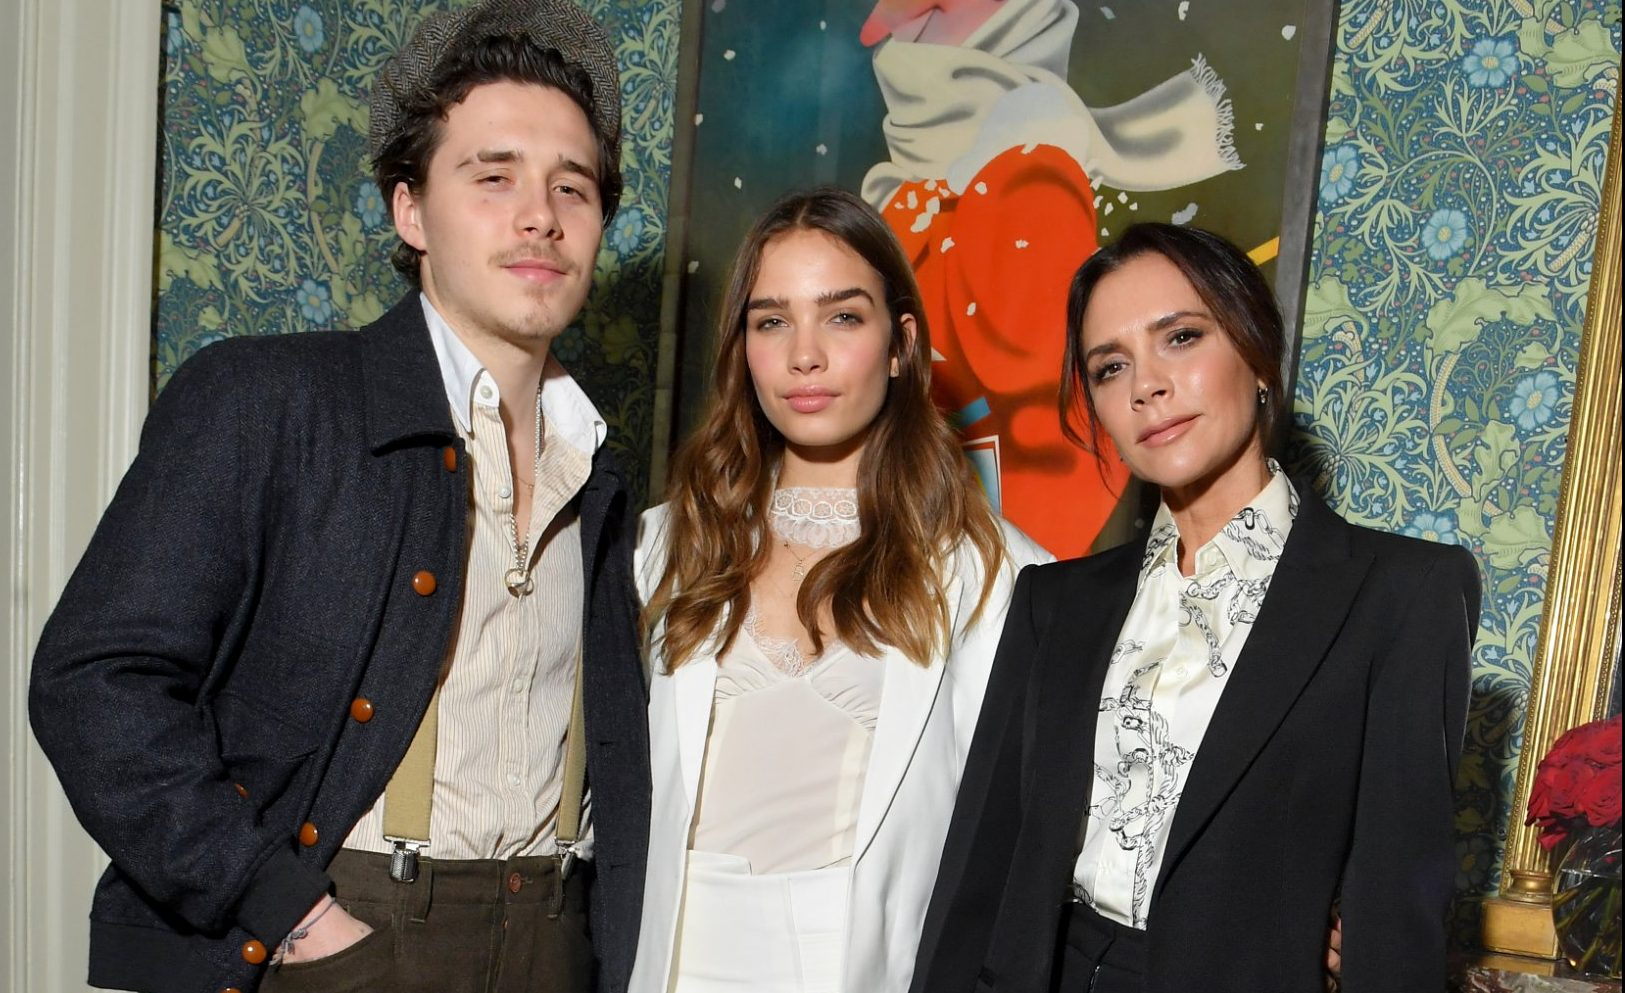 Brooklyn Beckham brings girlfriend Hana Cross to support Victoria at swanky Fashion Week party